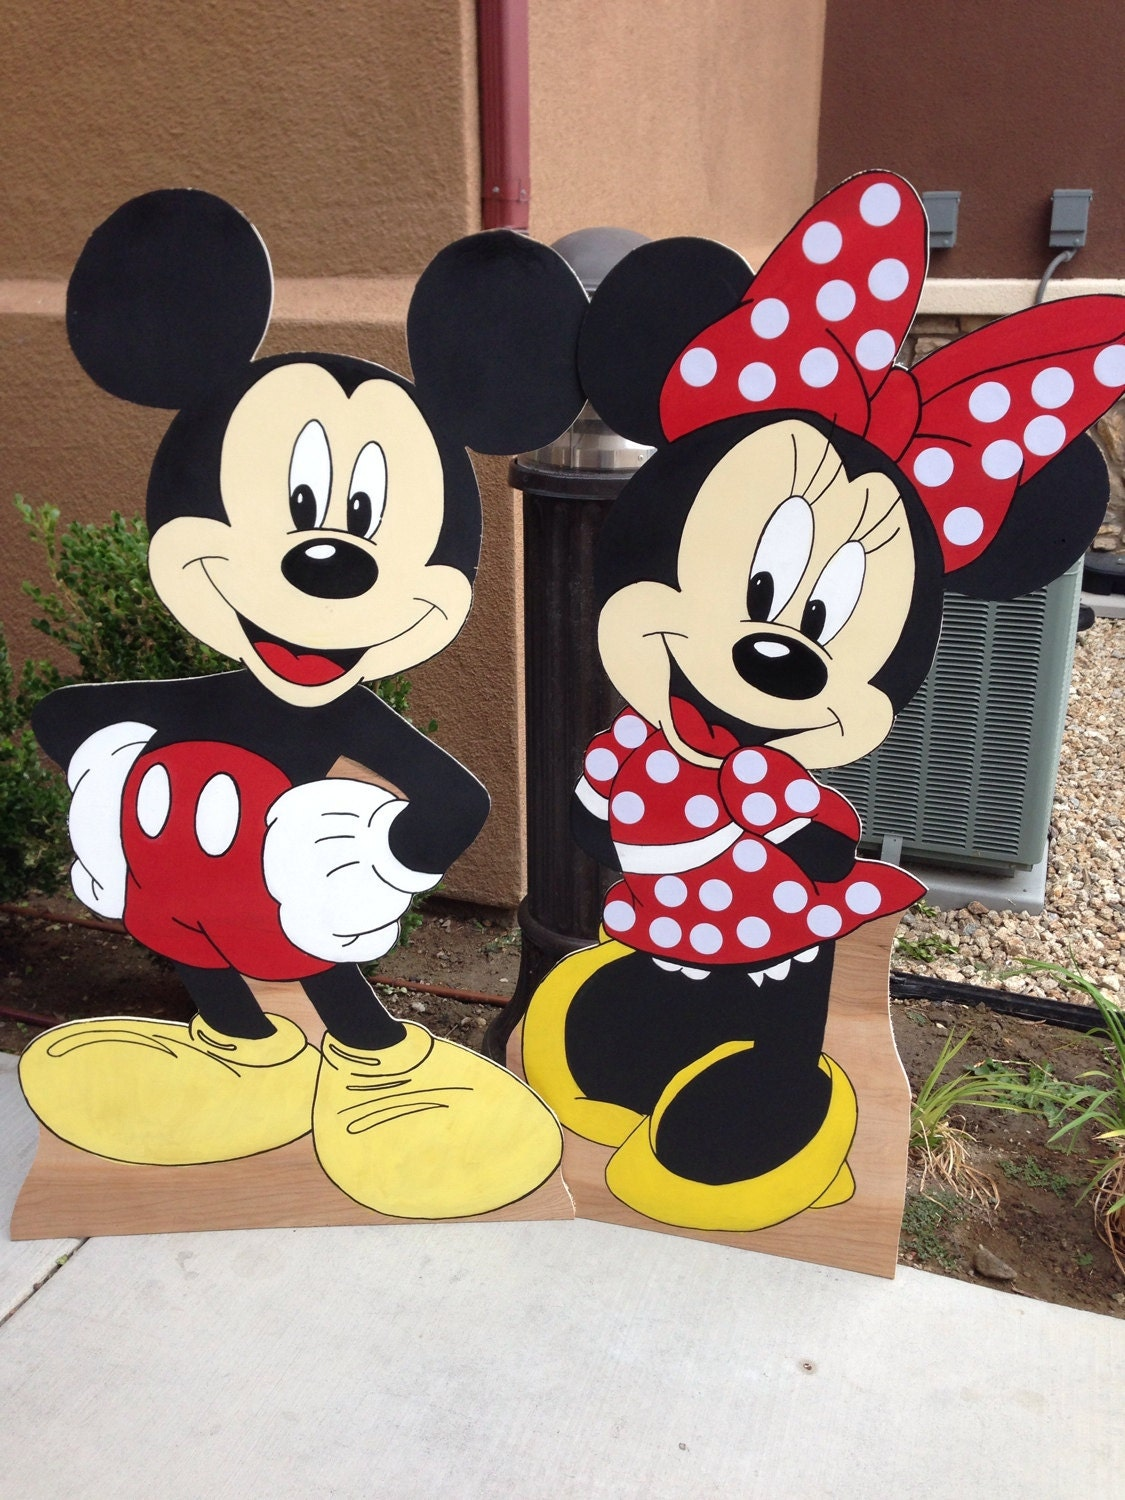 Minnie Mouse Cutout Mickey Mouse Cutout Minnie By